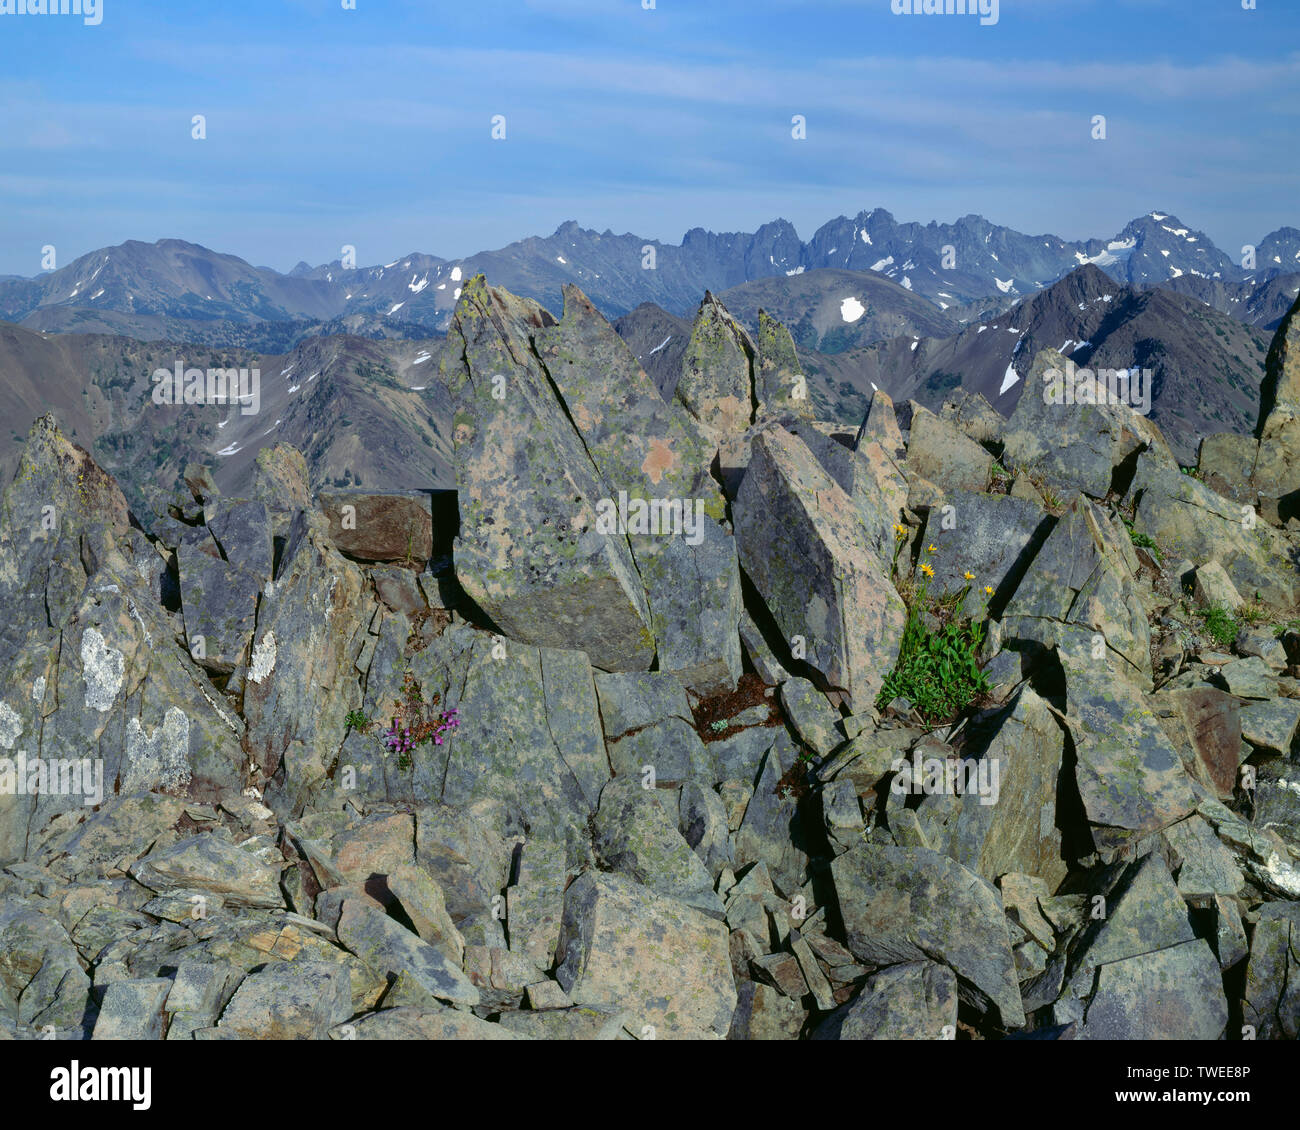 USA, Washington, Olympic National Park, Jagged boulders and easterly view of Gray Wolf Ridge and The Needles in the distance, Olympic Mountains. - Stock Image